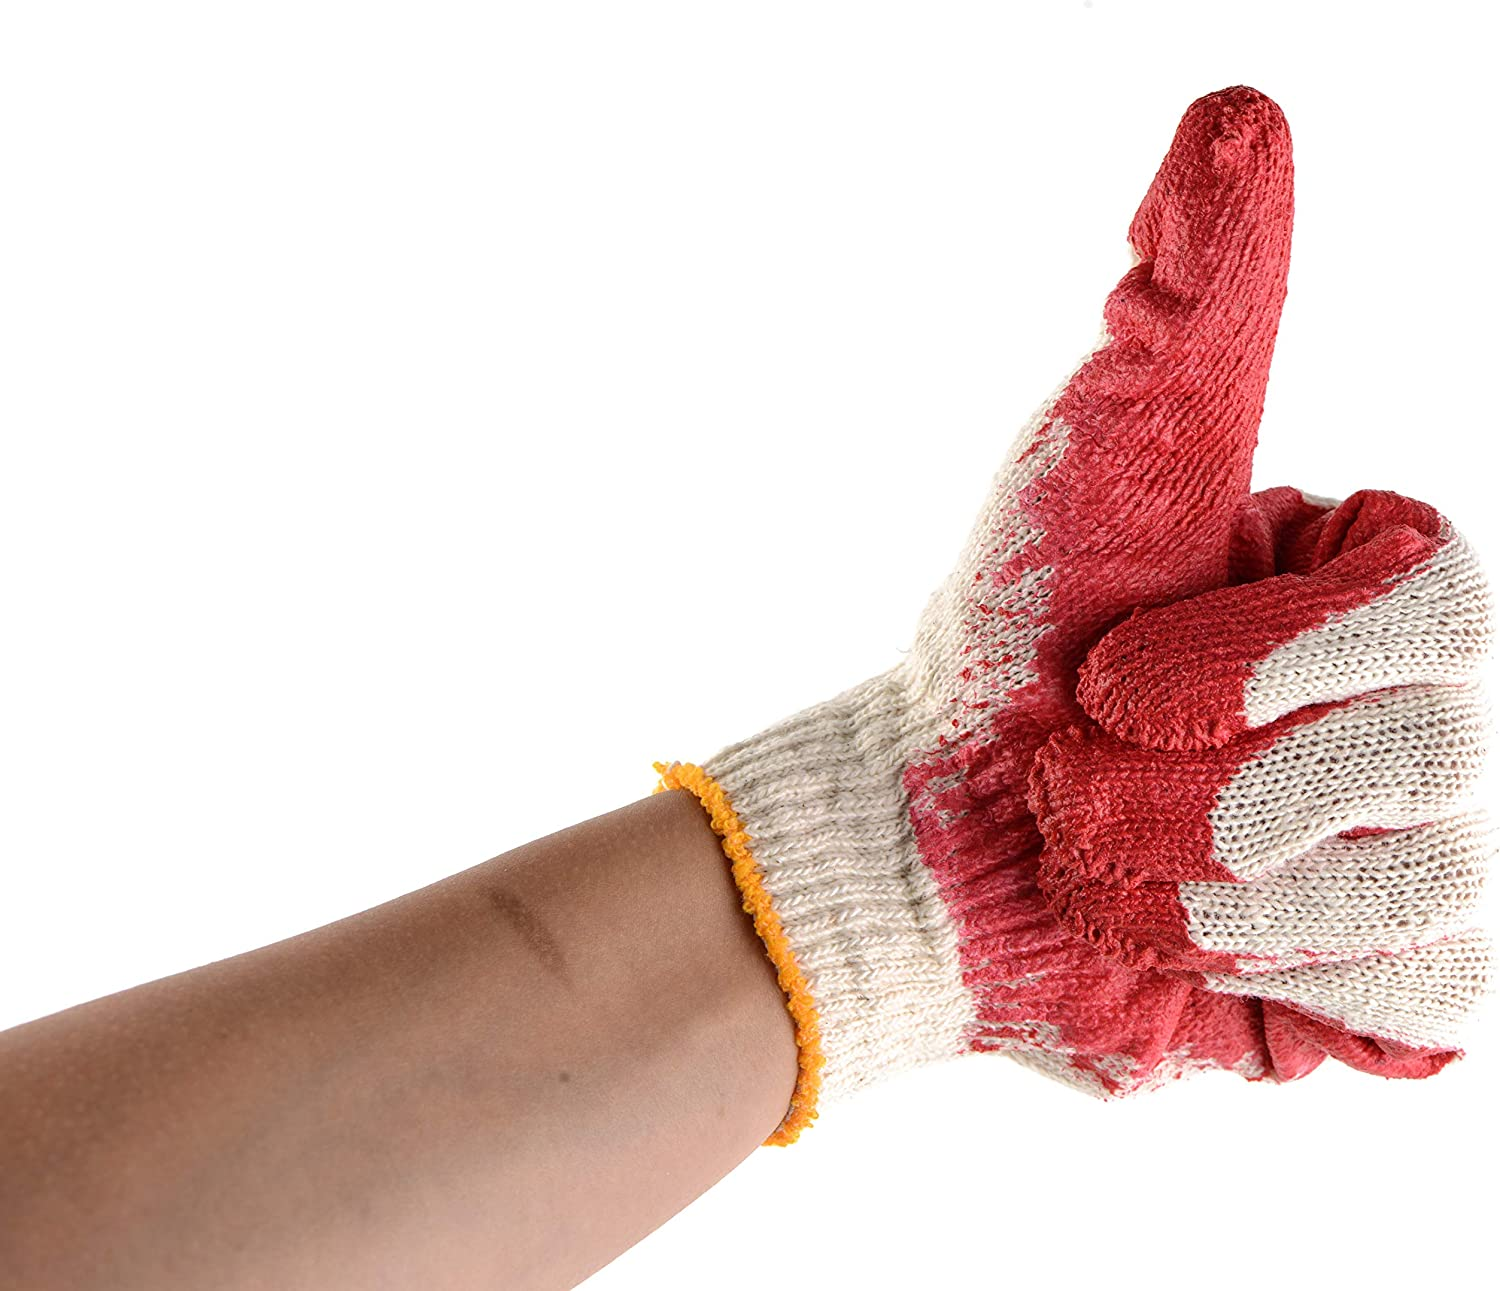 300 Pairs - Red Latex Coated Gloves Inventory cleanup selling sale Work SMALL by Excellent Cotton EcoQu